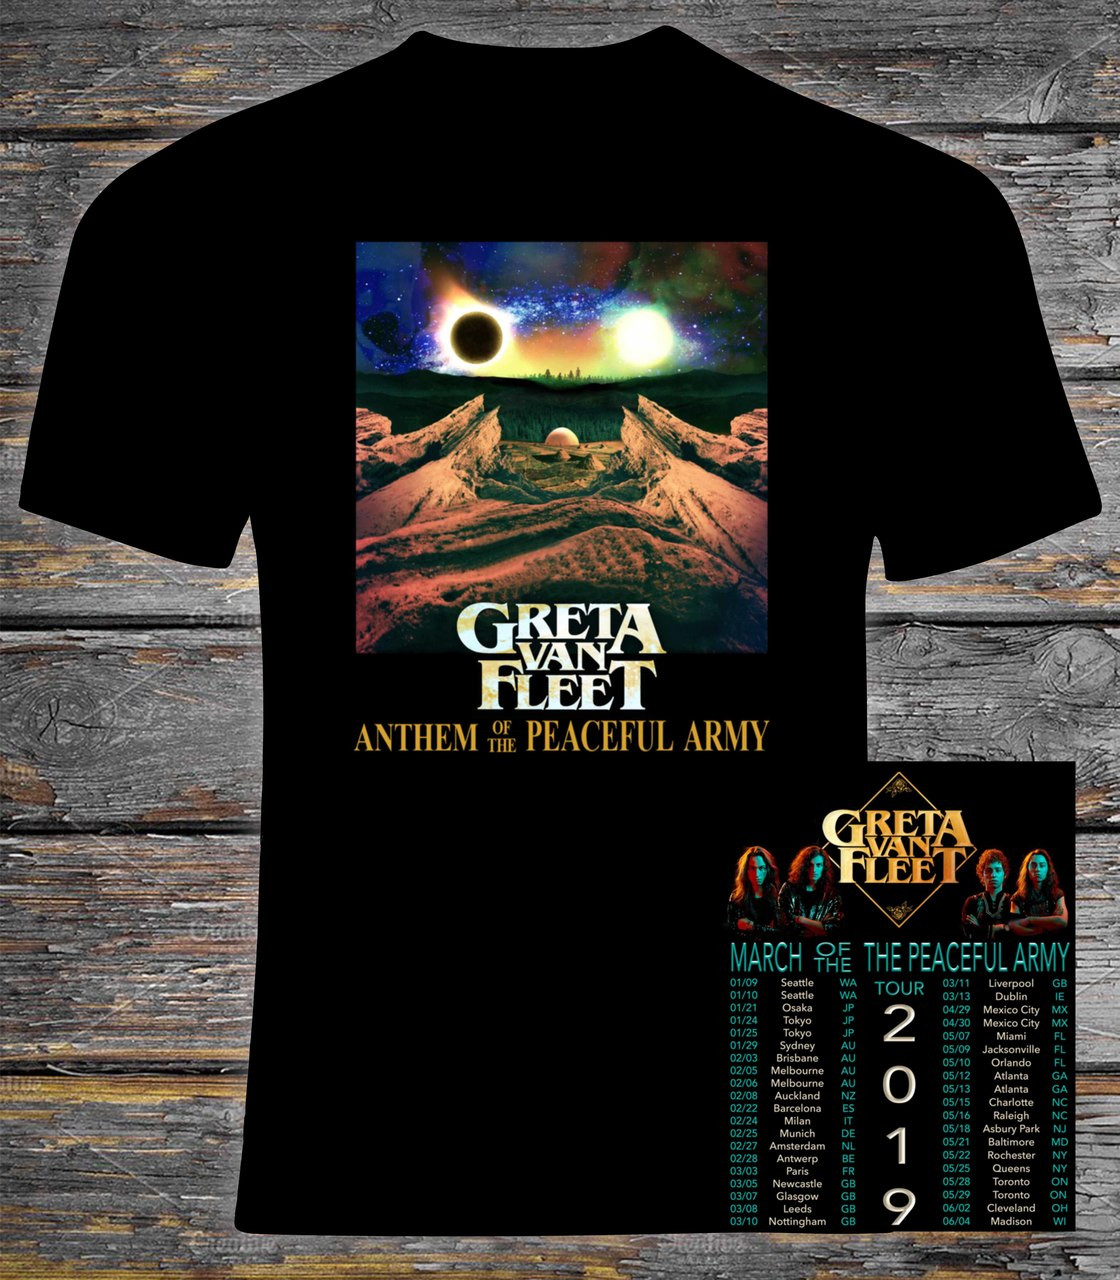 best selection of 2019 new & pre-owned designer super cheap compares to Greta Van Fleet 2019 March of the Peaceful Army Concert Tour